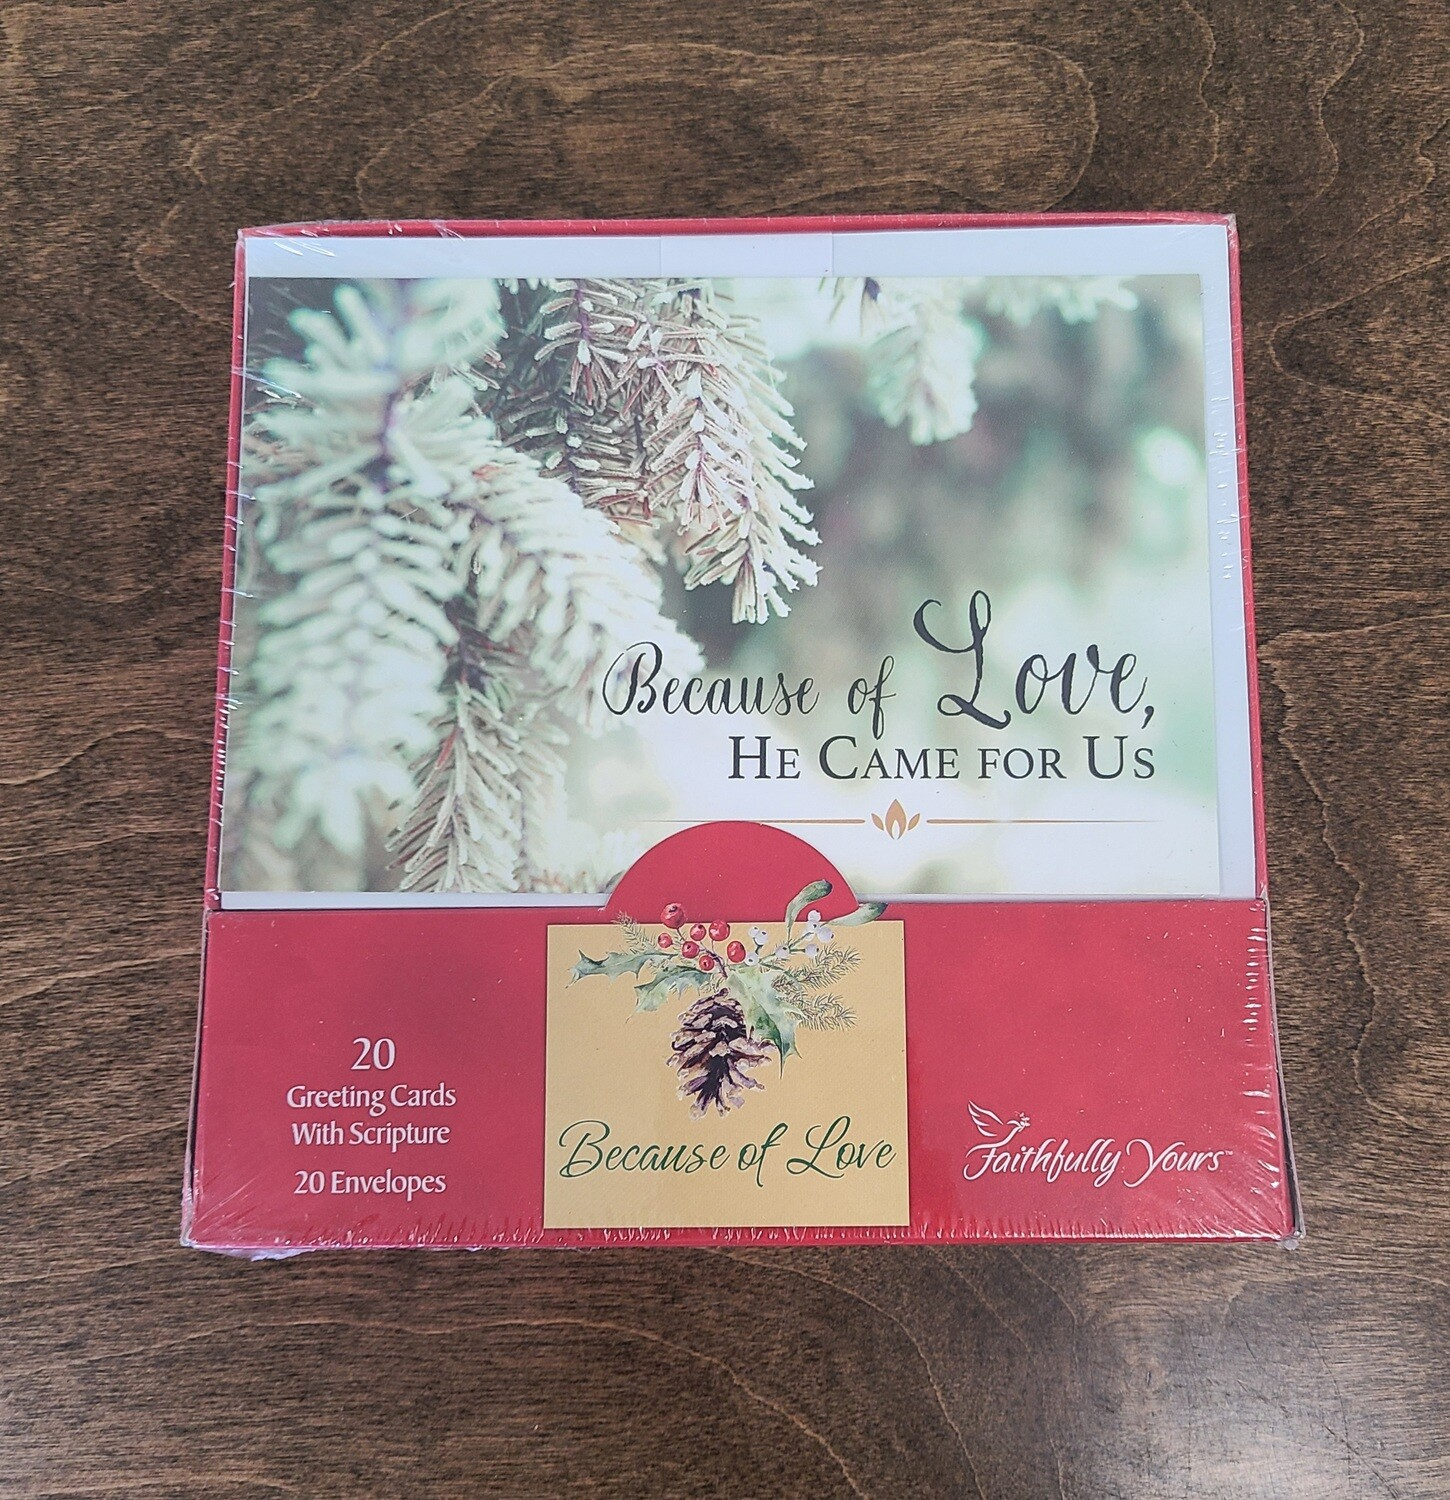 Because of Love, He Came for Us 20 Boxed Christmas Cards with Scriptures and Envelopes